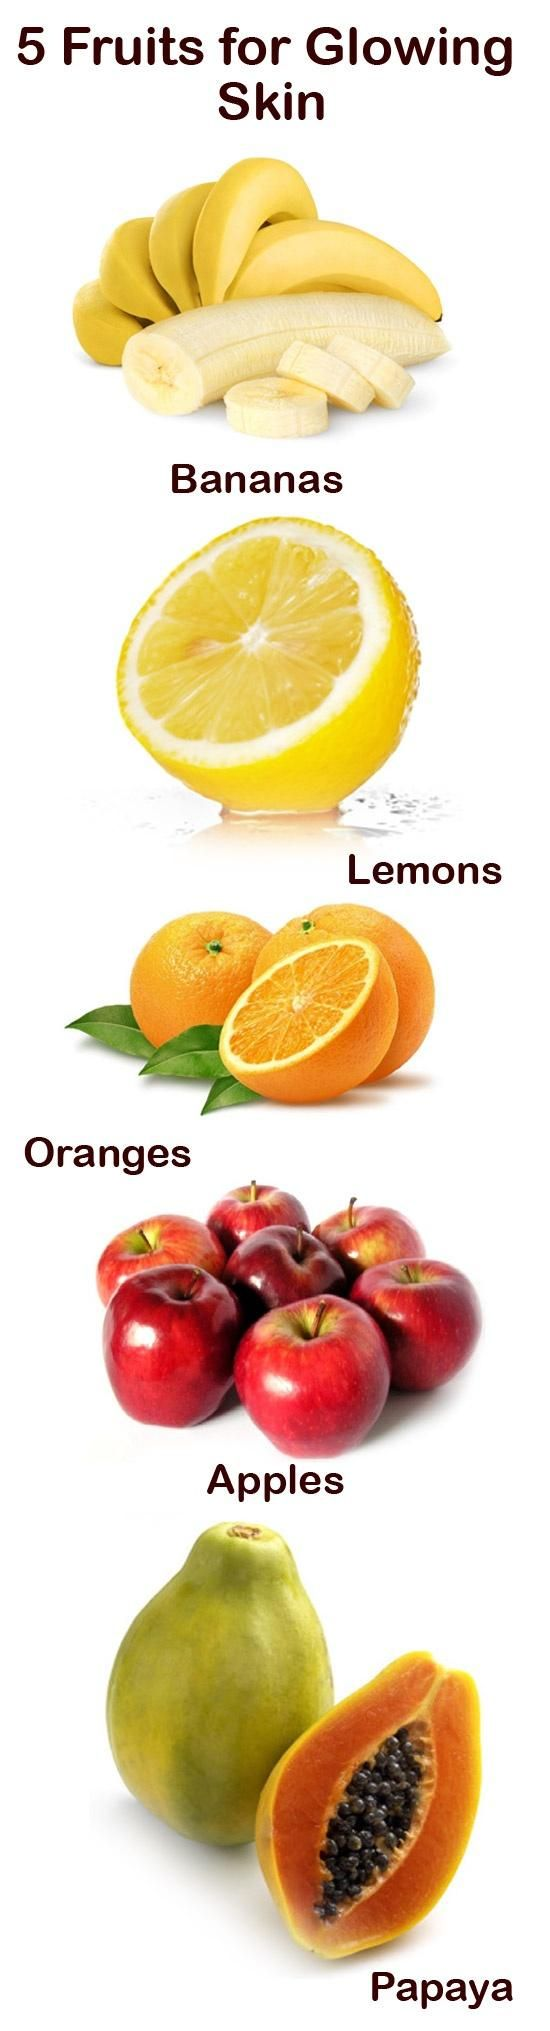 5 Fruits for Glowing Skin :Fruits help with Clear complexion; Skin rejuvenation, Natural hydration; Improvement of Skin texture.